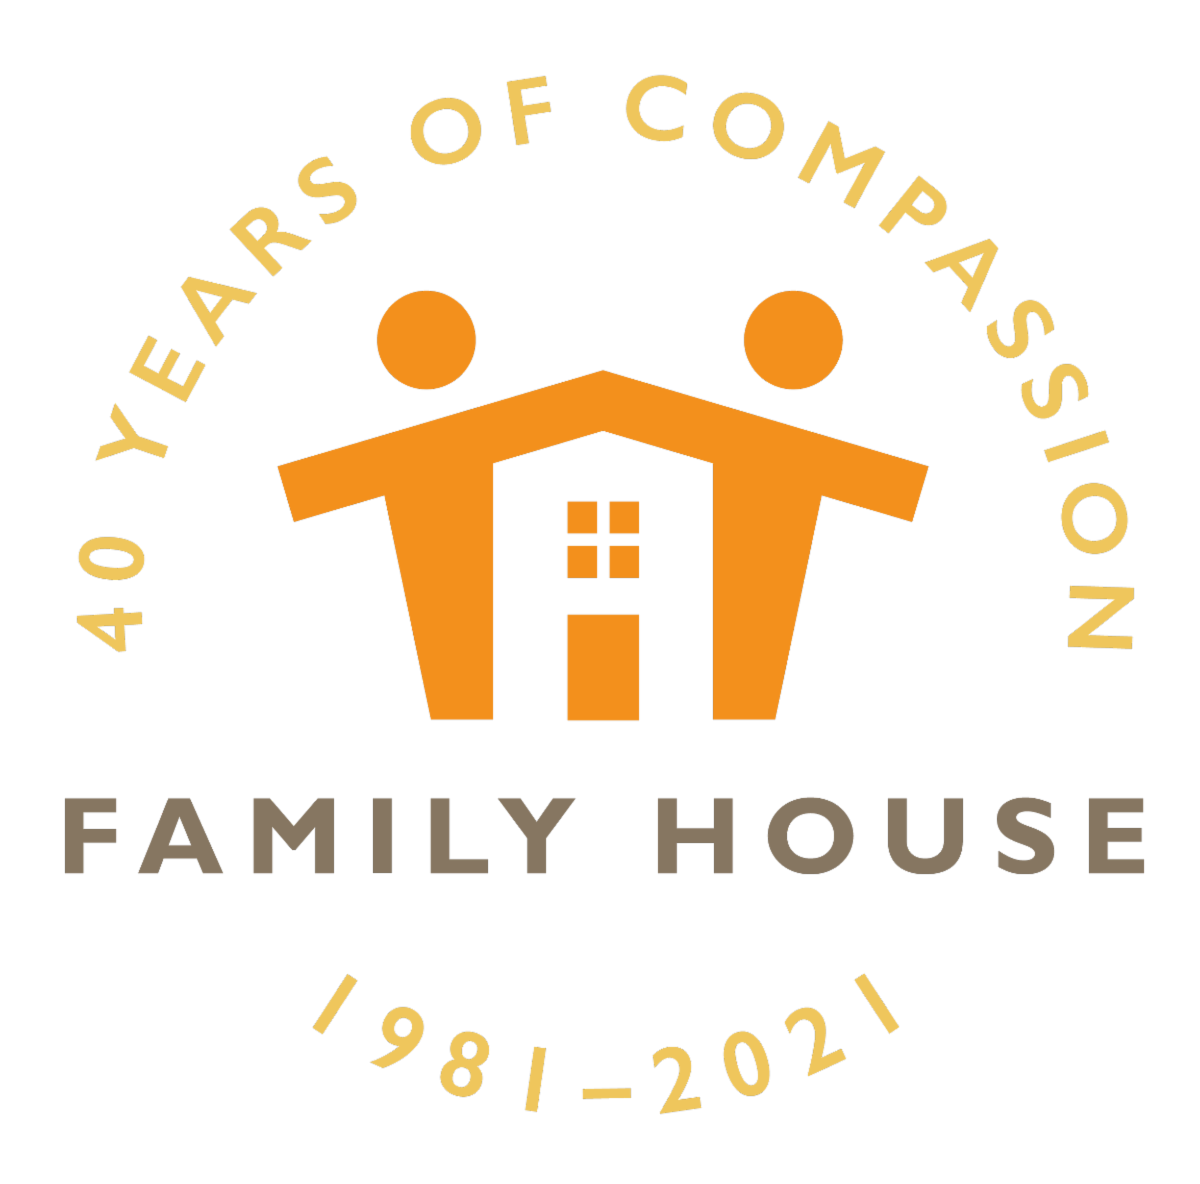 40th Anniversary Family House logo